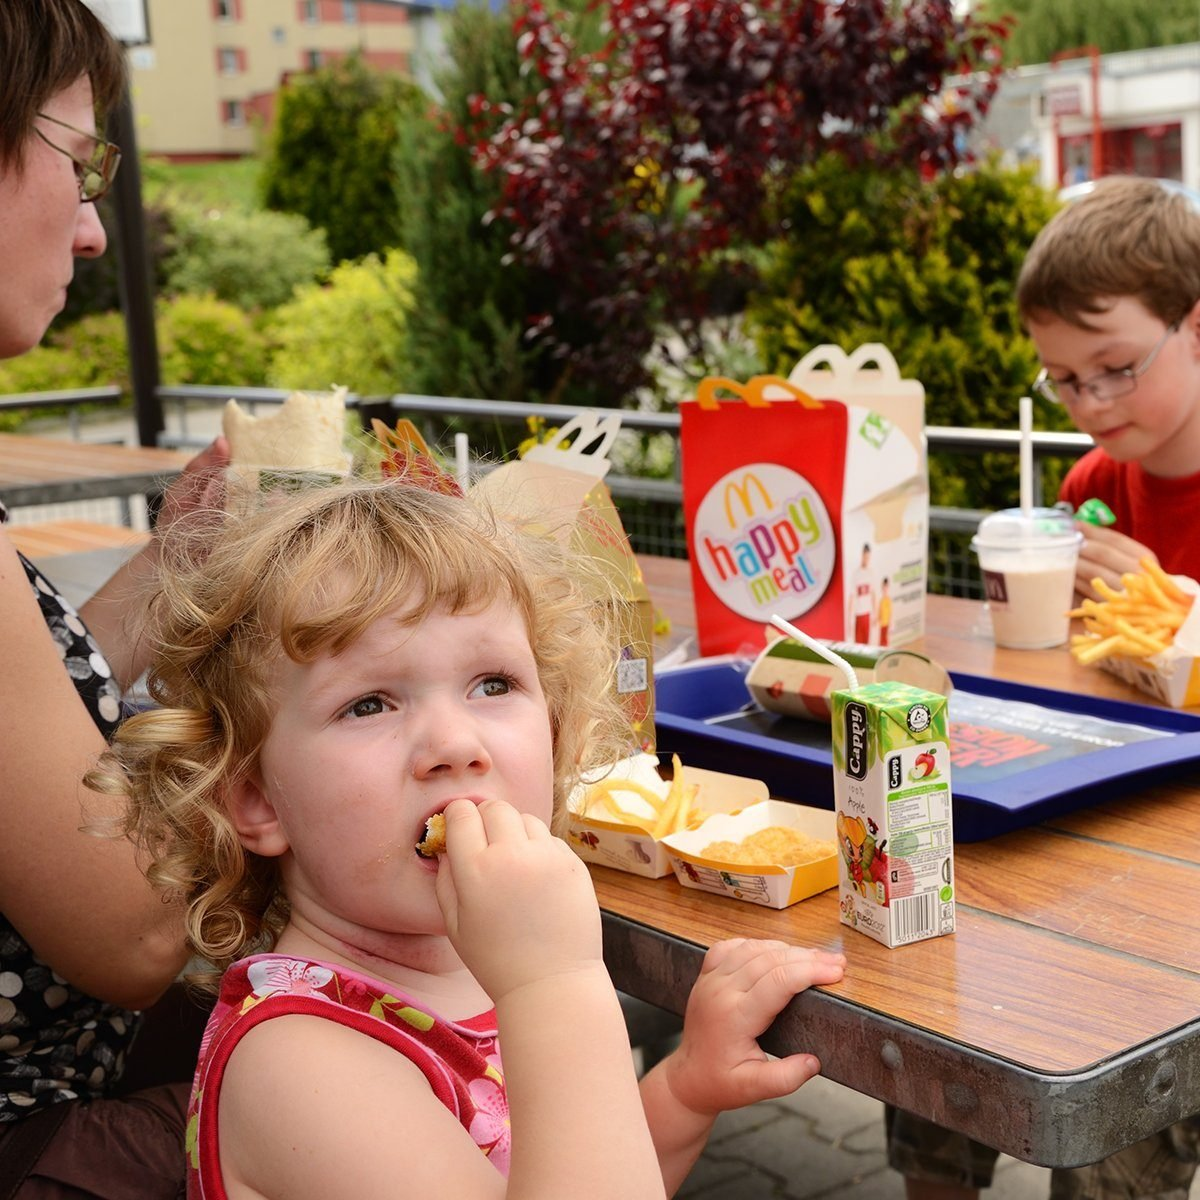 """""""Krakow, Poland - June 8th, 2012: Mother with two kids having a lunch in McDonald's, in the outdoor part of the restaurant. 3 years old blonde girl in the foreground, looking back and keeping a nugget in her mouth. Mother sitting on her left. 8 years old boy sitting opposite. Happy Meal box, some French fries, blue tray, milk shake, and a box with Cappy juice on the table."""